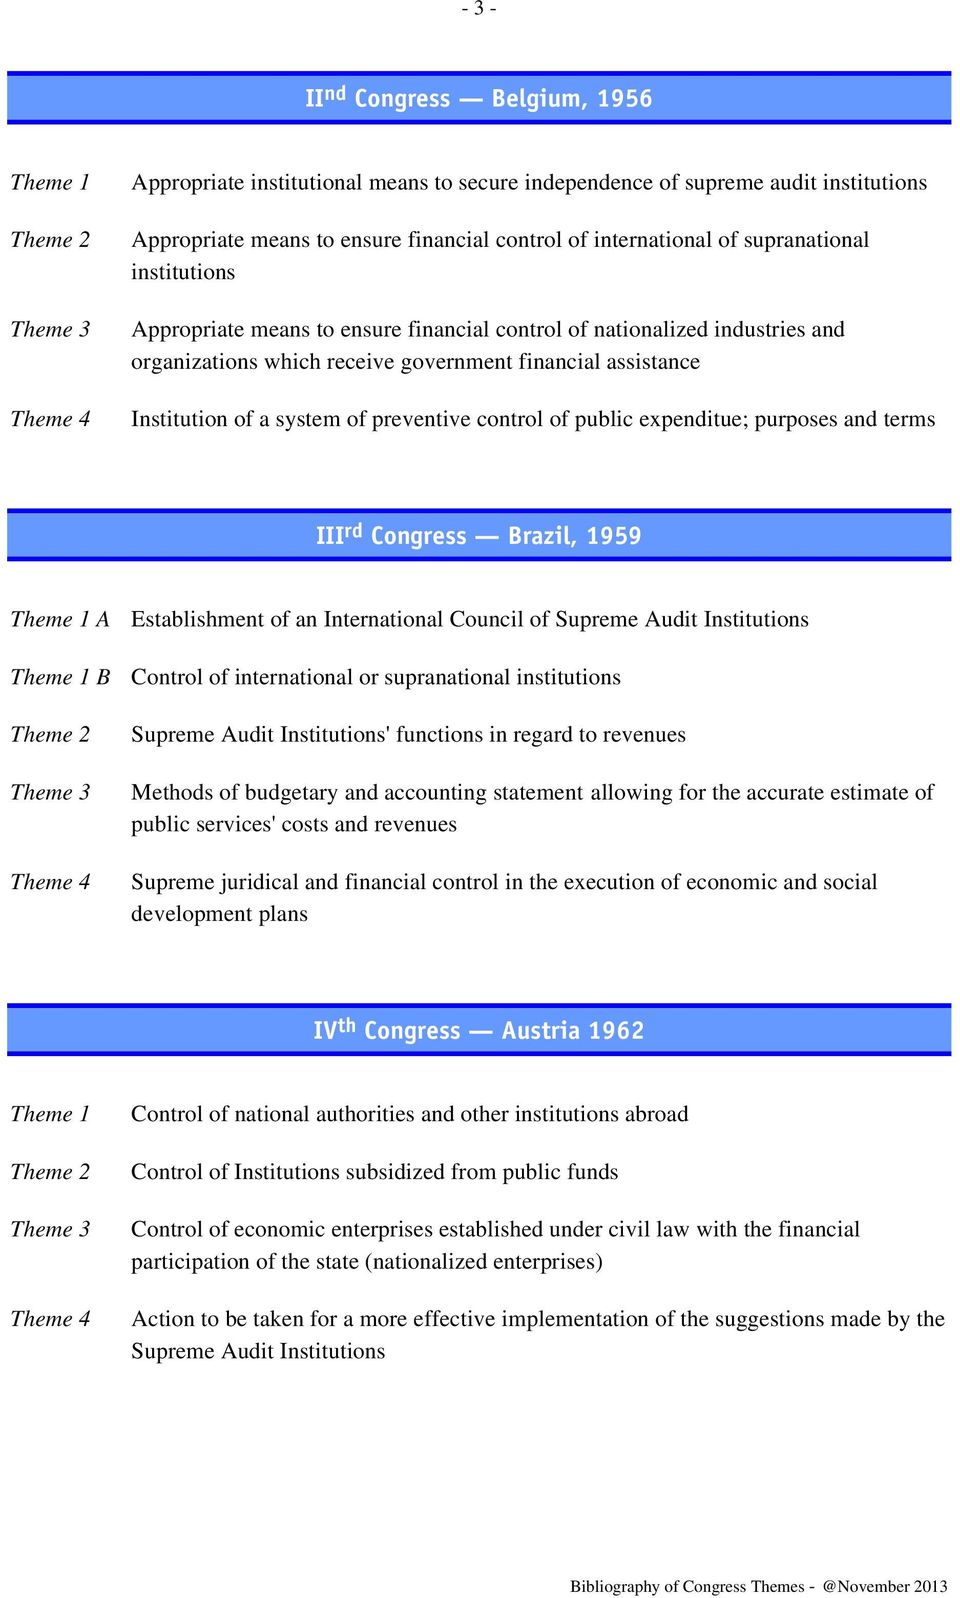 public expenditue; purposes and terms III rd Congress Brazil, 1959 A Establishment of an International Council of Supreme Audit Institutions B Control of international or supranational institutions